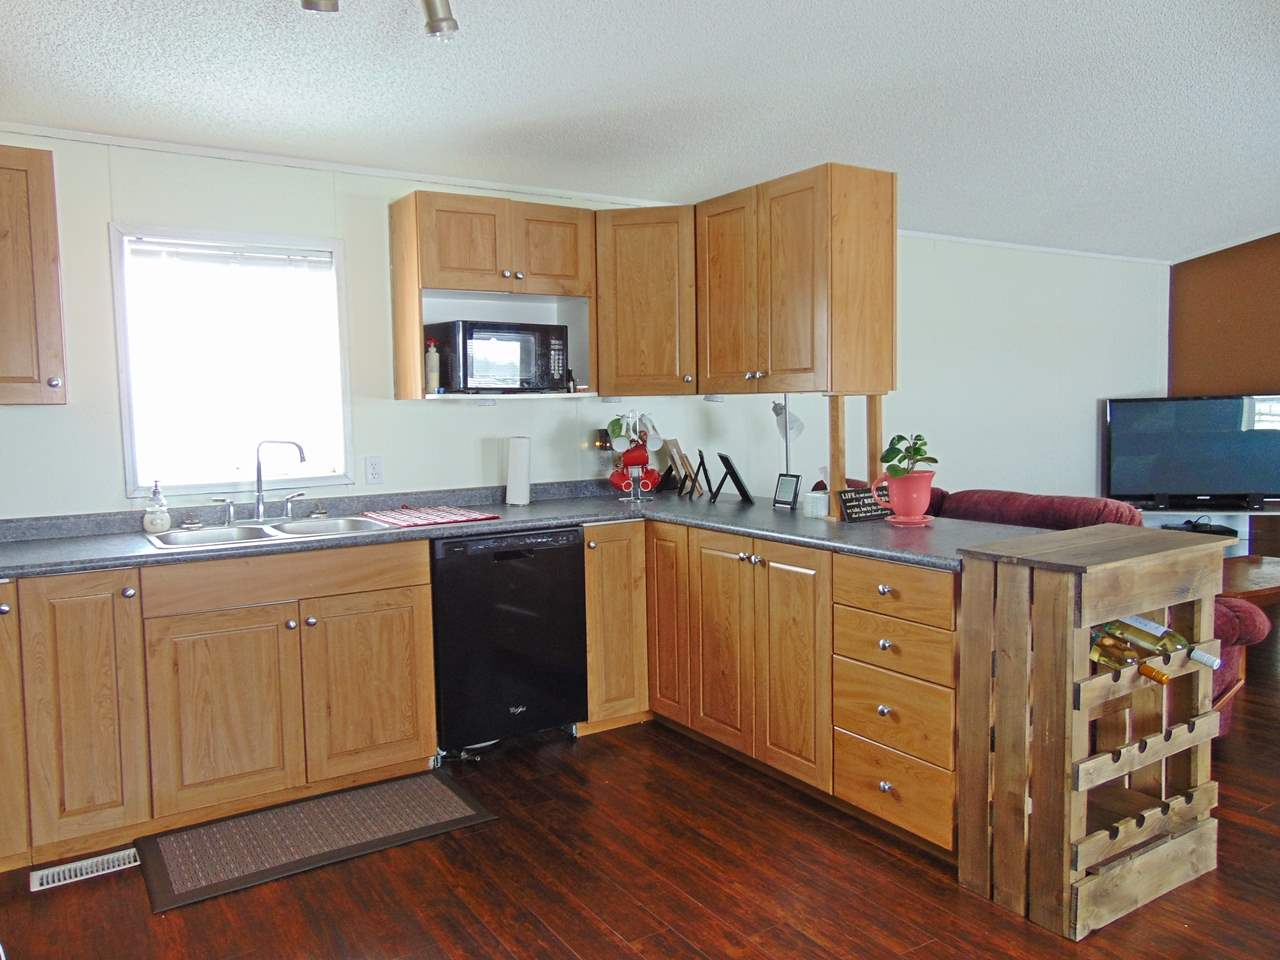 Photo 11: 60214 Range Road 251: Rural Westlock County House for sale : MLS(r) # E4059826